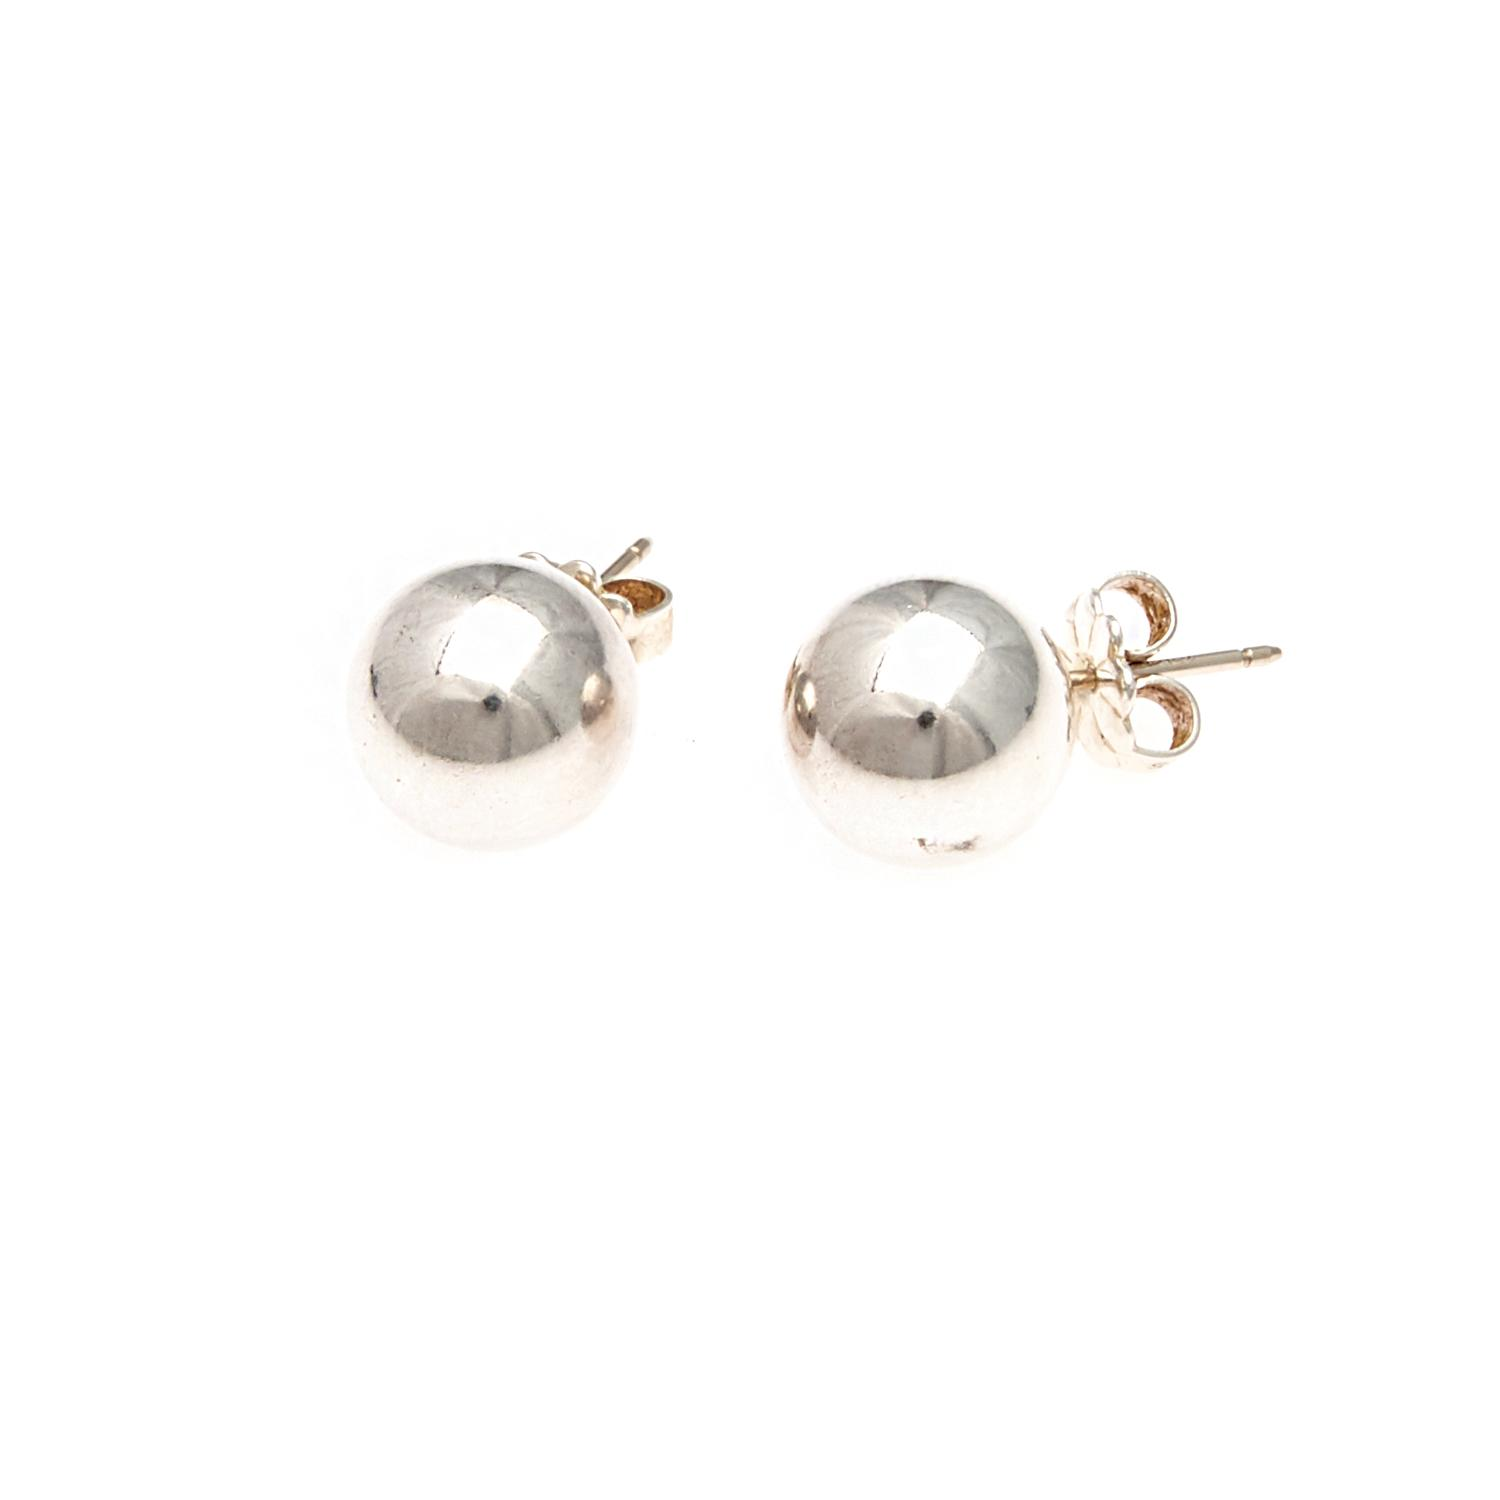 8060df06b Lot 587 of 165: A Pair of Sterling Silver Tiffany & Co Bead Earrings